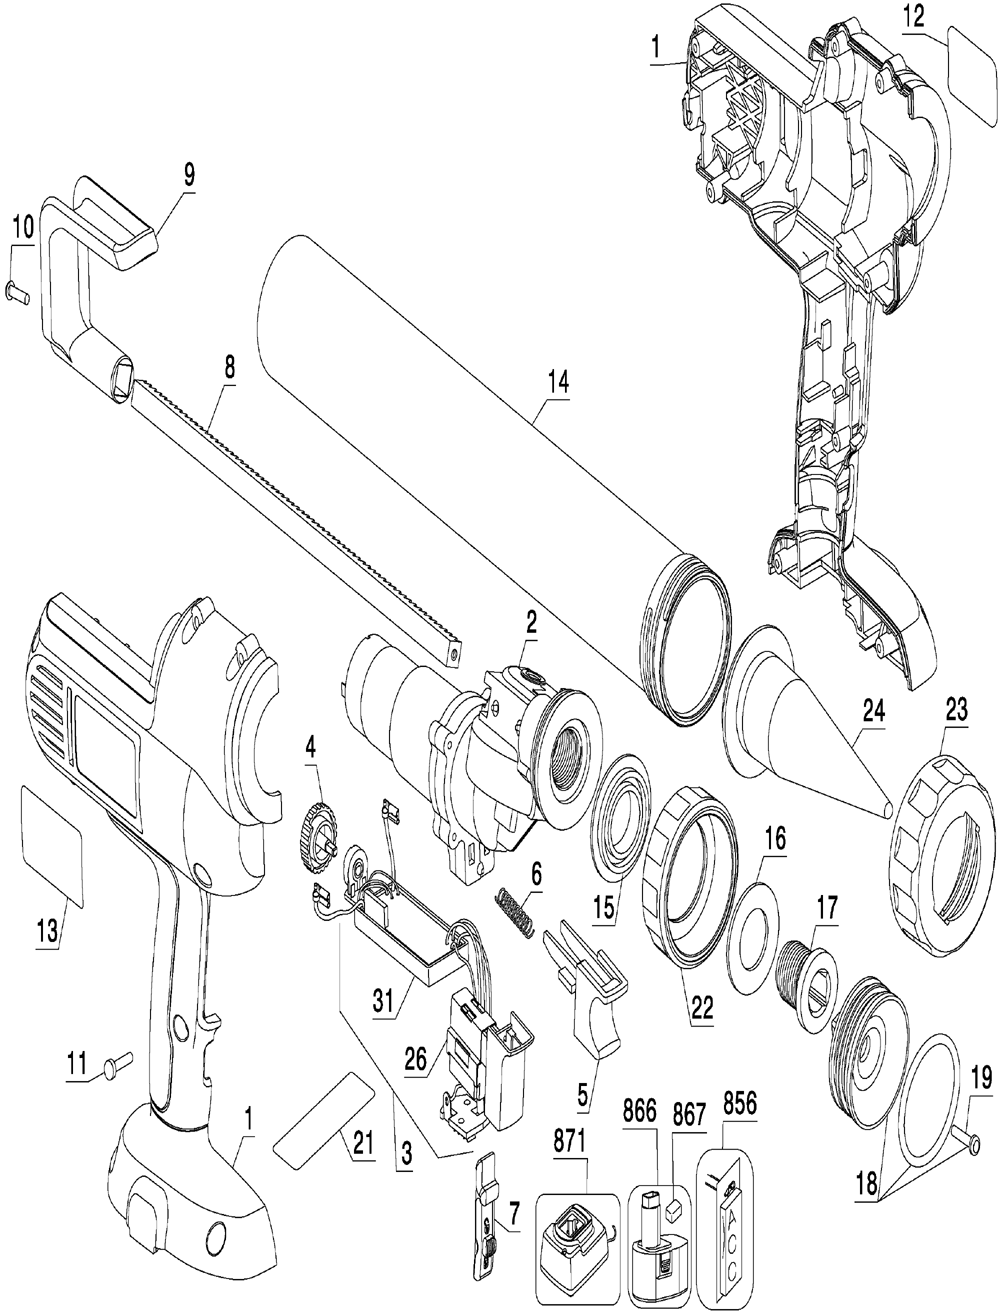 Lincoln grease gun 1880 parts wiring diagrams lincoln auto lube wiring diagram at nhrt